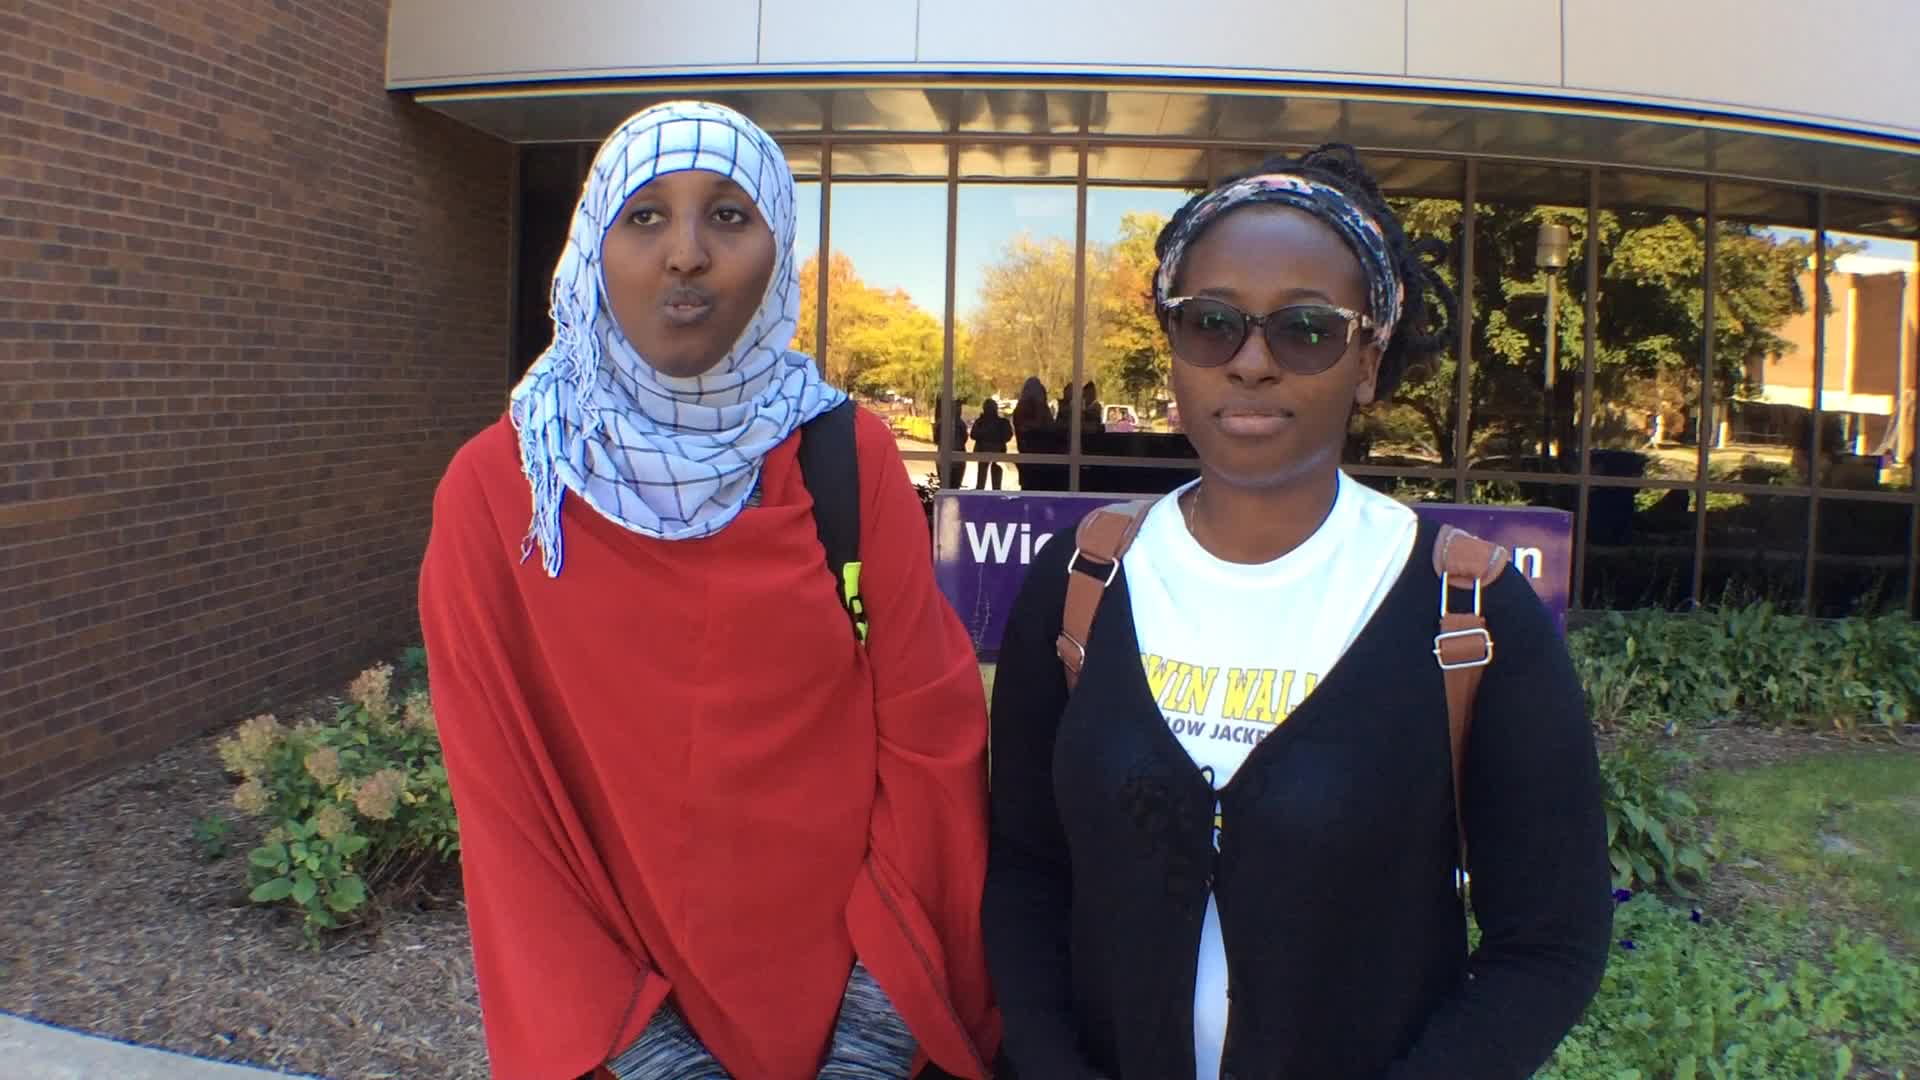 Rachel Uwimbabazi and Hani Farah, Mankato, MN - Homecoming 2016 at Minnesota State University, Mankato